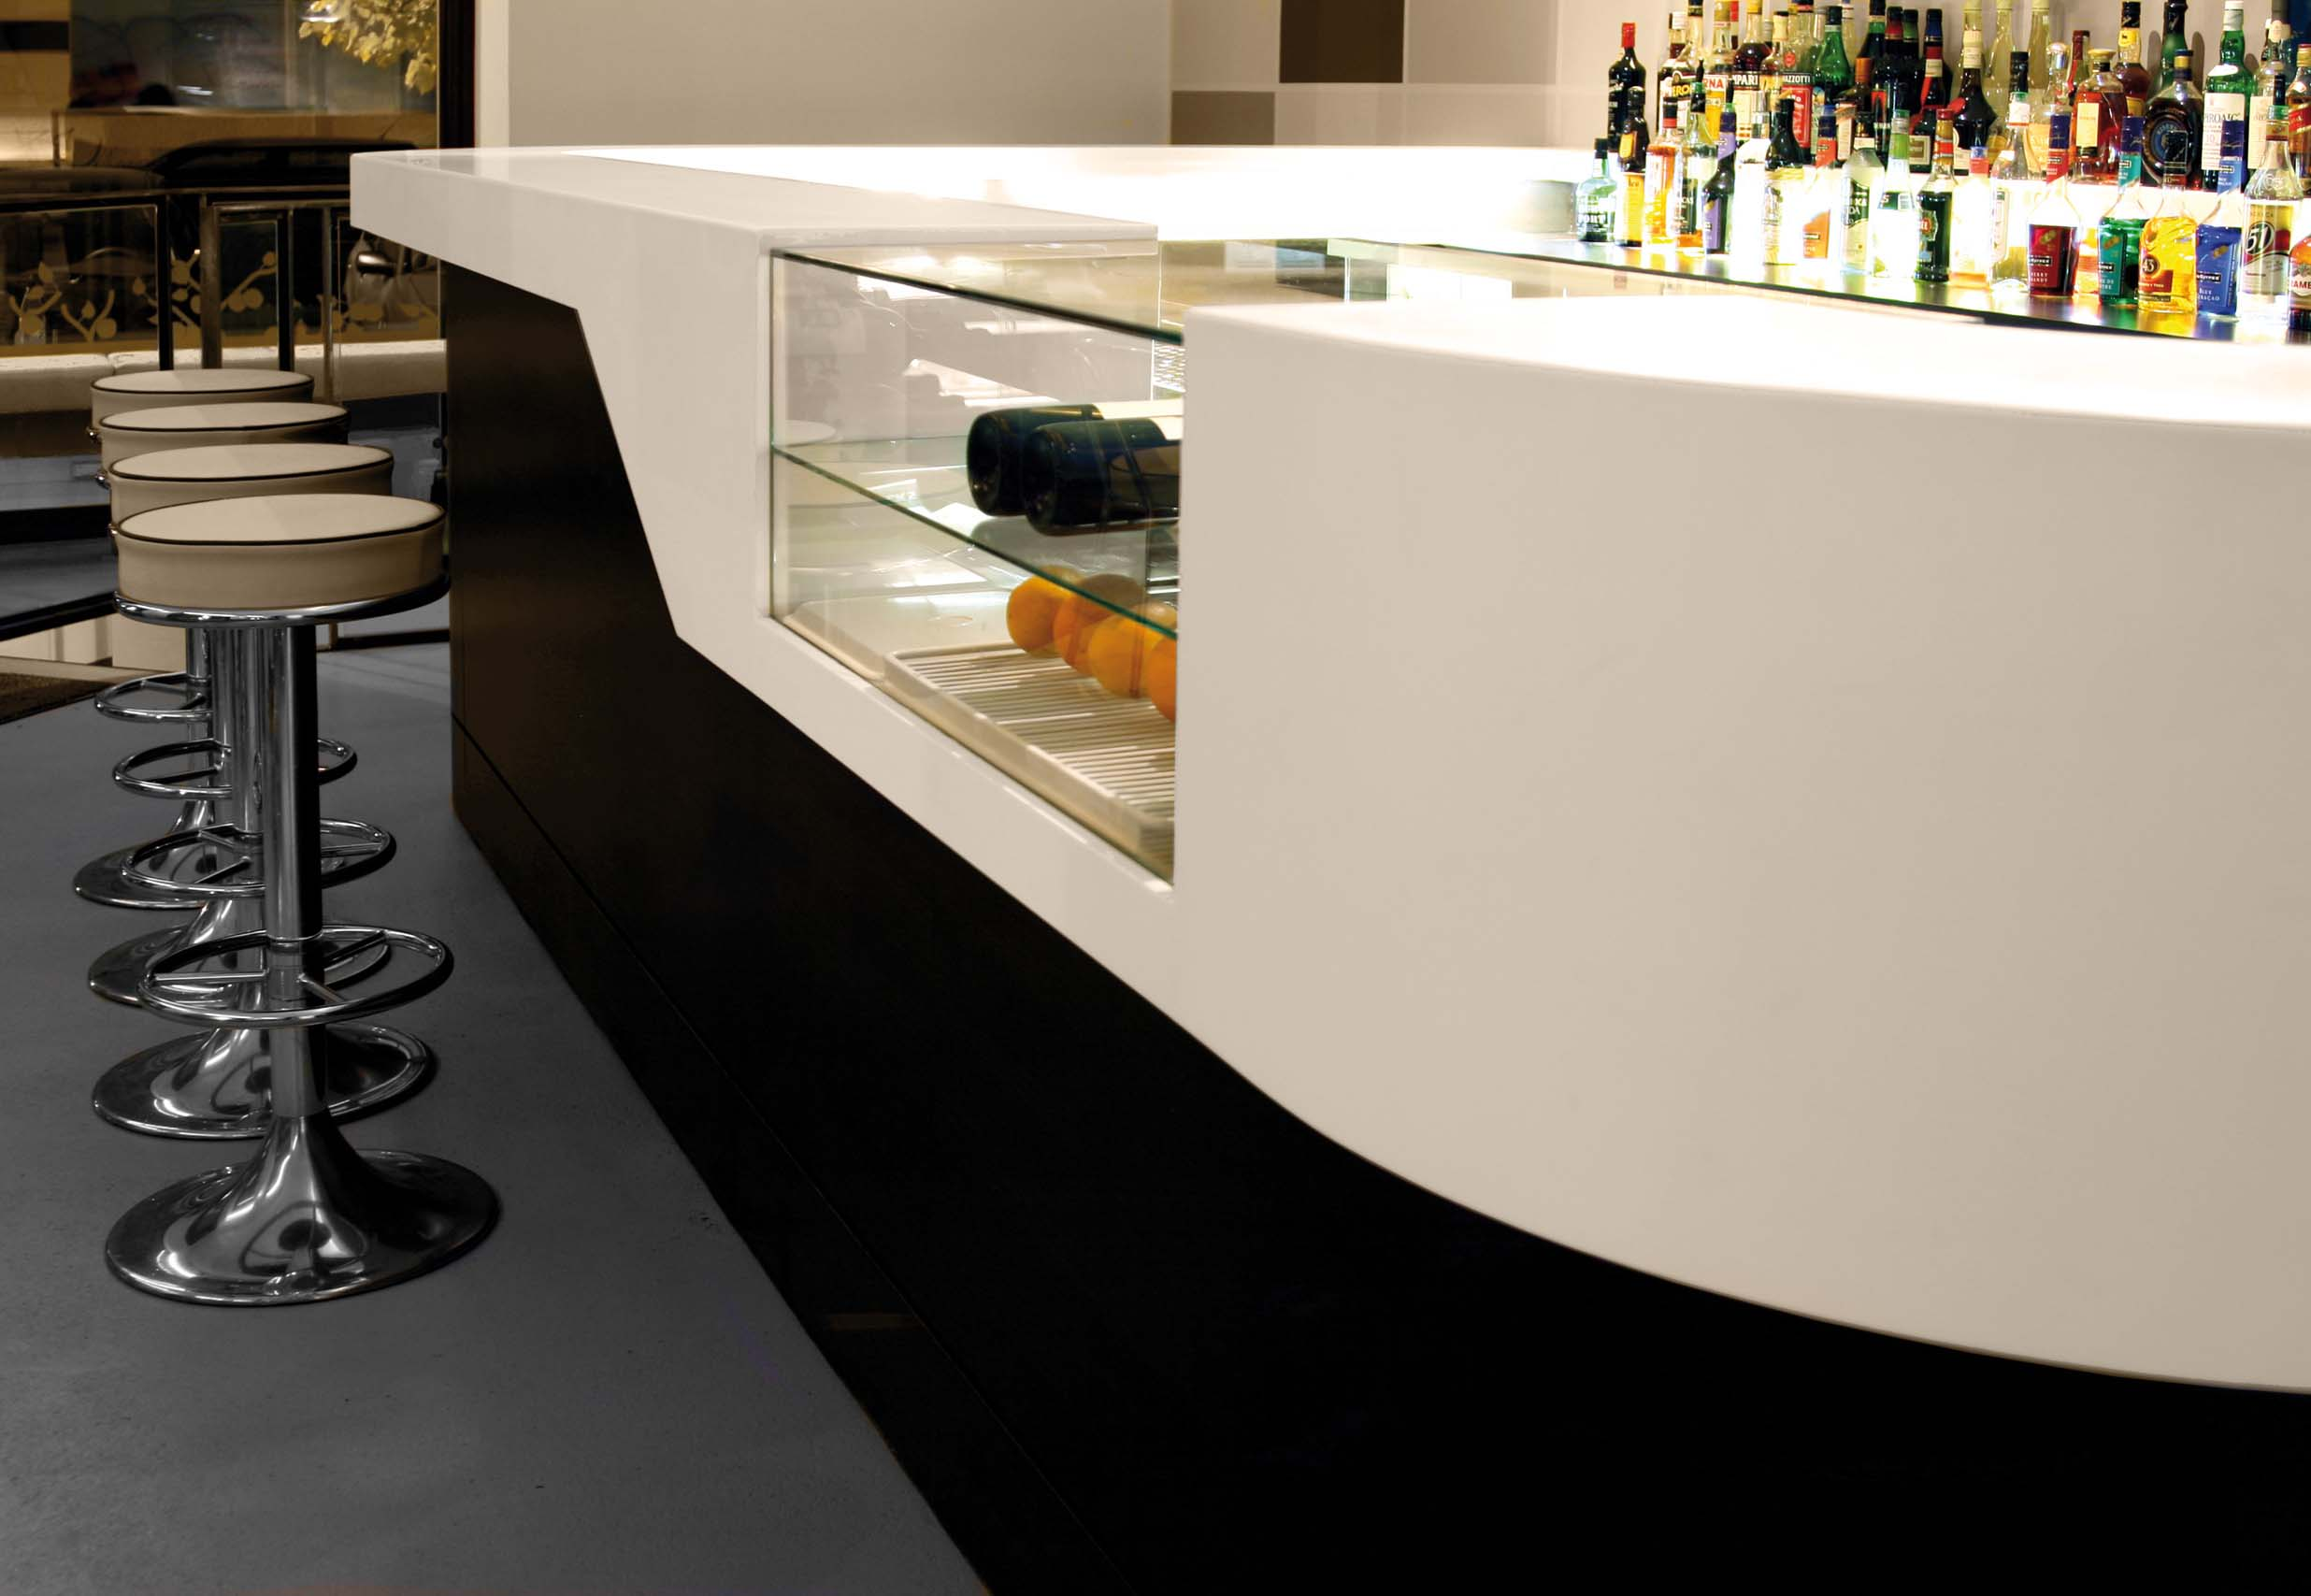 white and black artificial stone bar counter with refrigerator